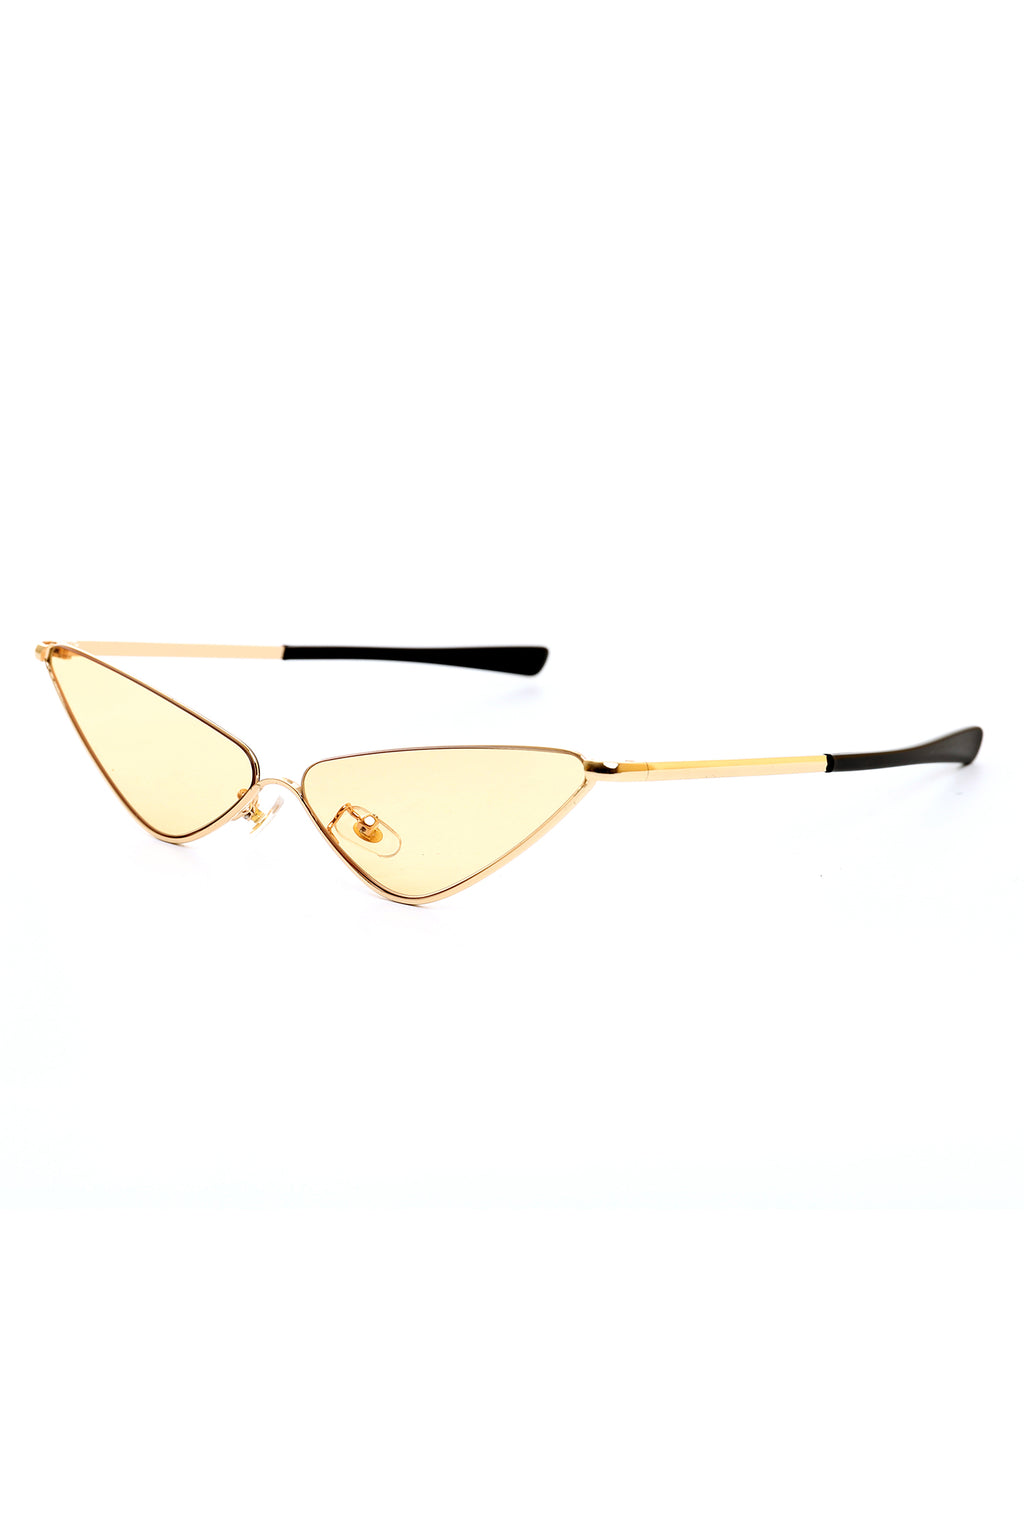 CAT EYE GLASSES-YELLOW